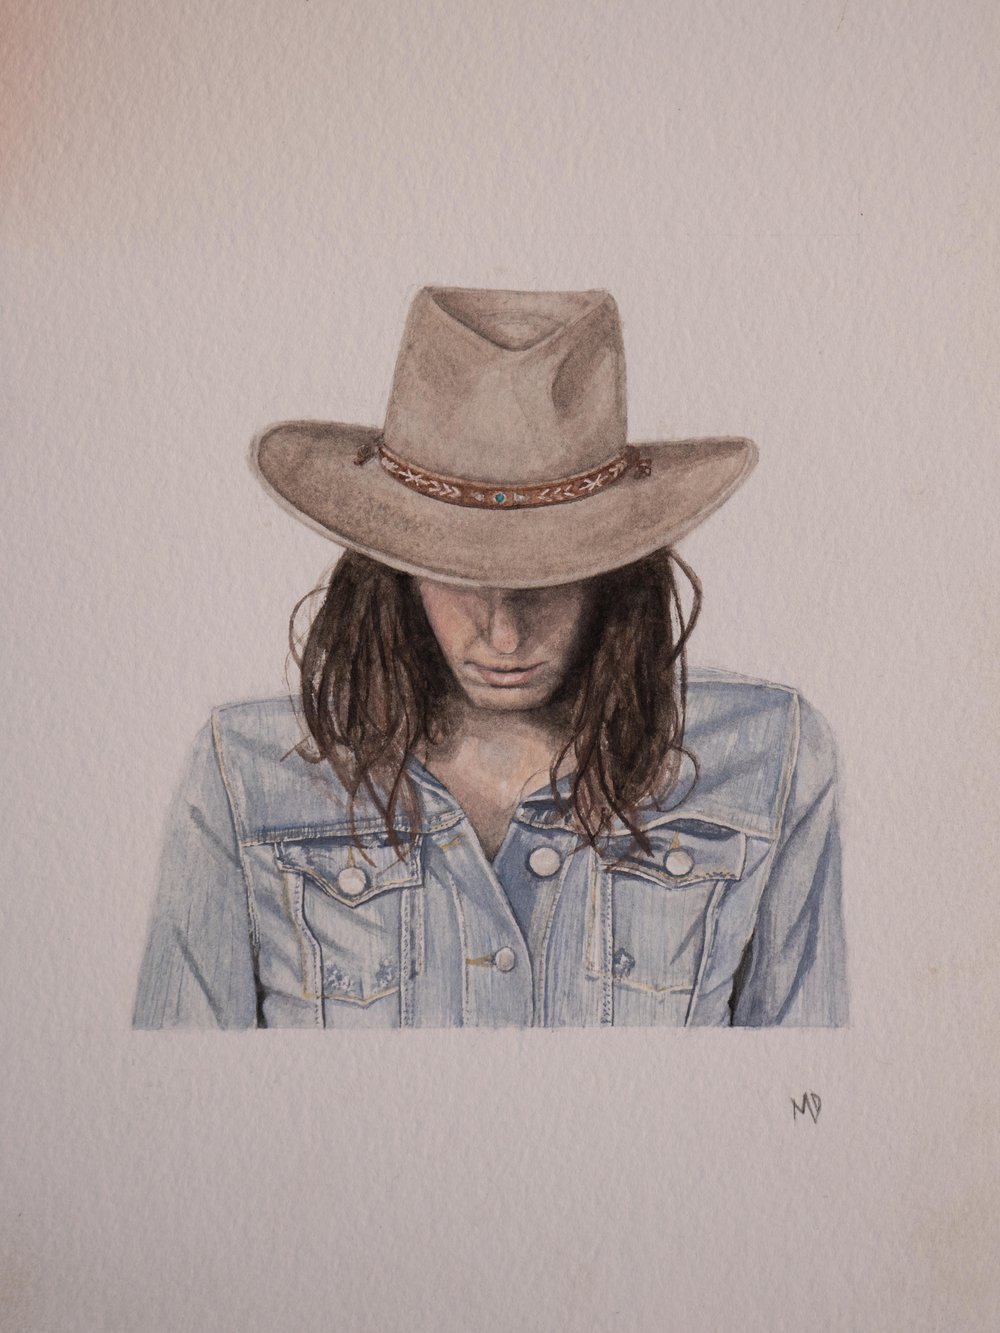 Georgia | Women of the west | watercolor series by western artist Melissa DiNino | montana